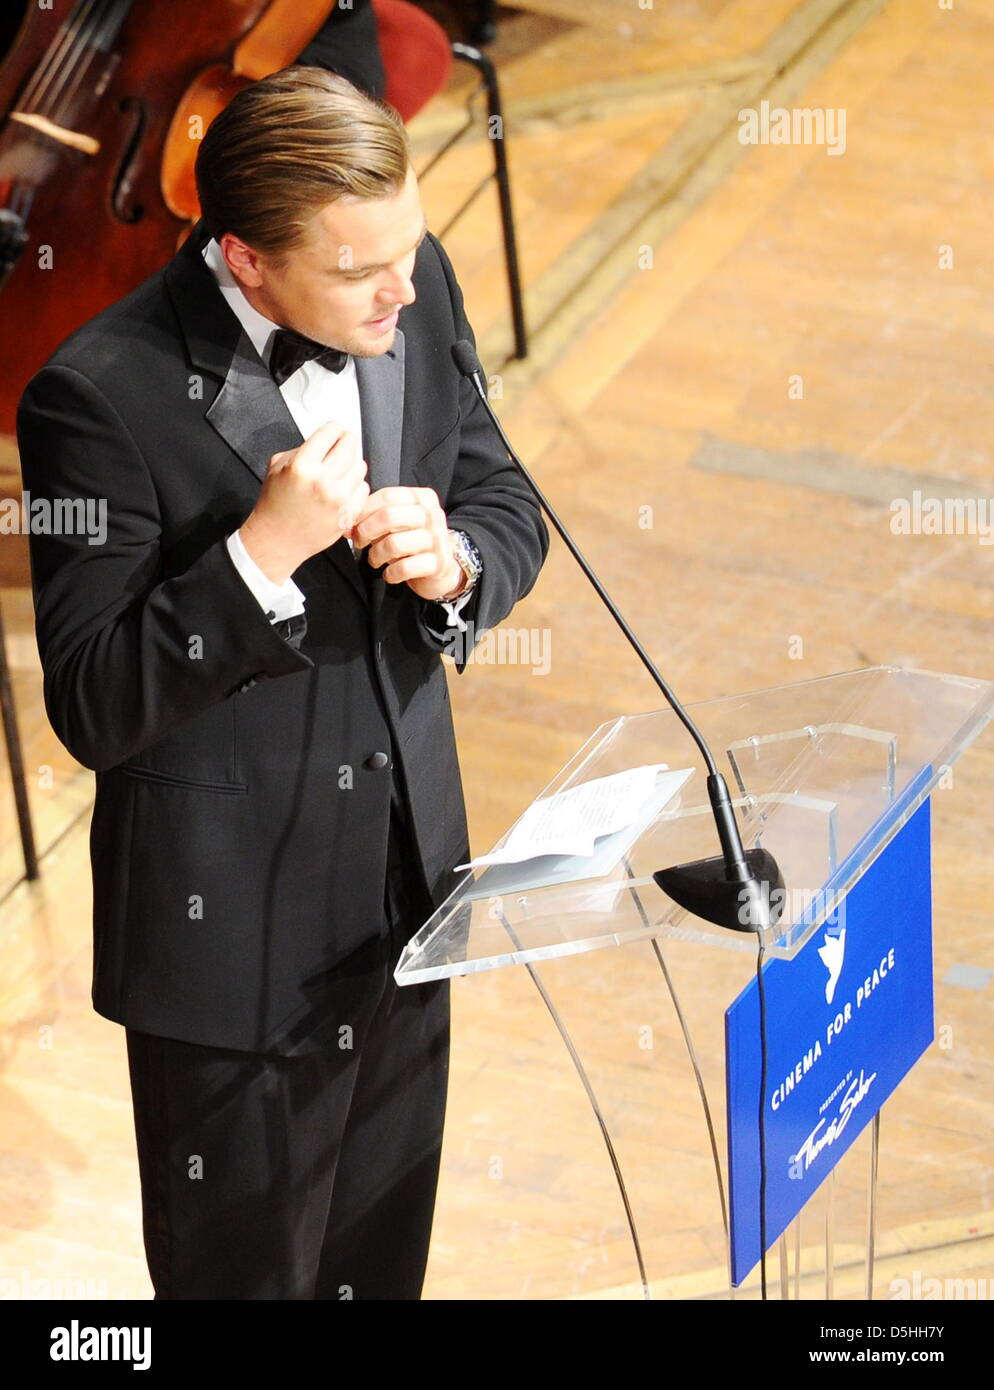 US actor Leonardo DiCaprio attends the Cinema for Peace charity gala in Berlin, Germany, Monday, 15 February 2010. - Stock Image